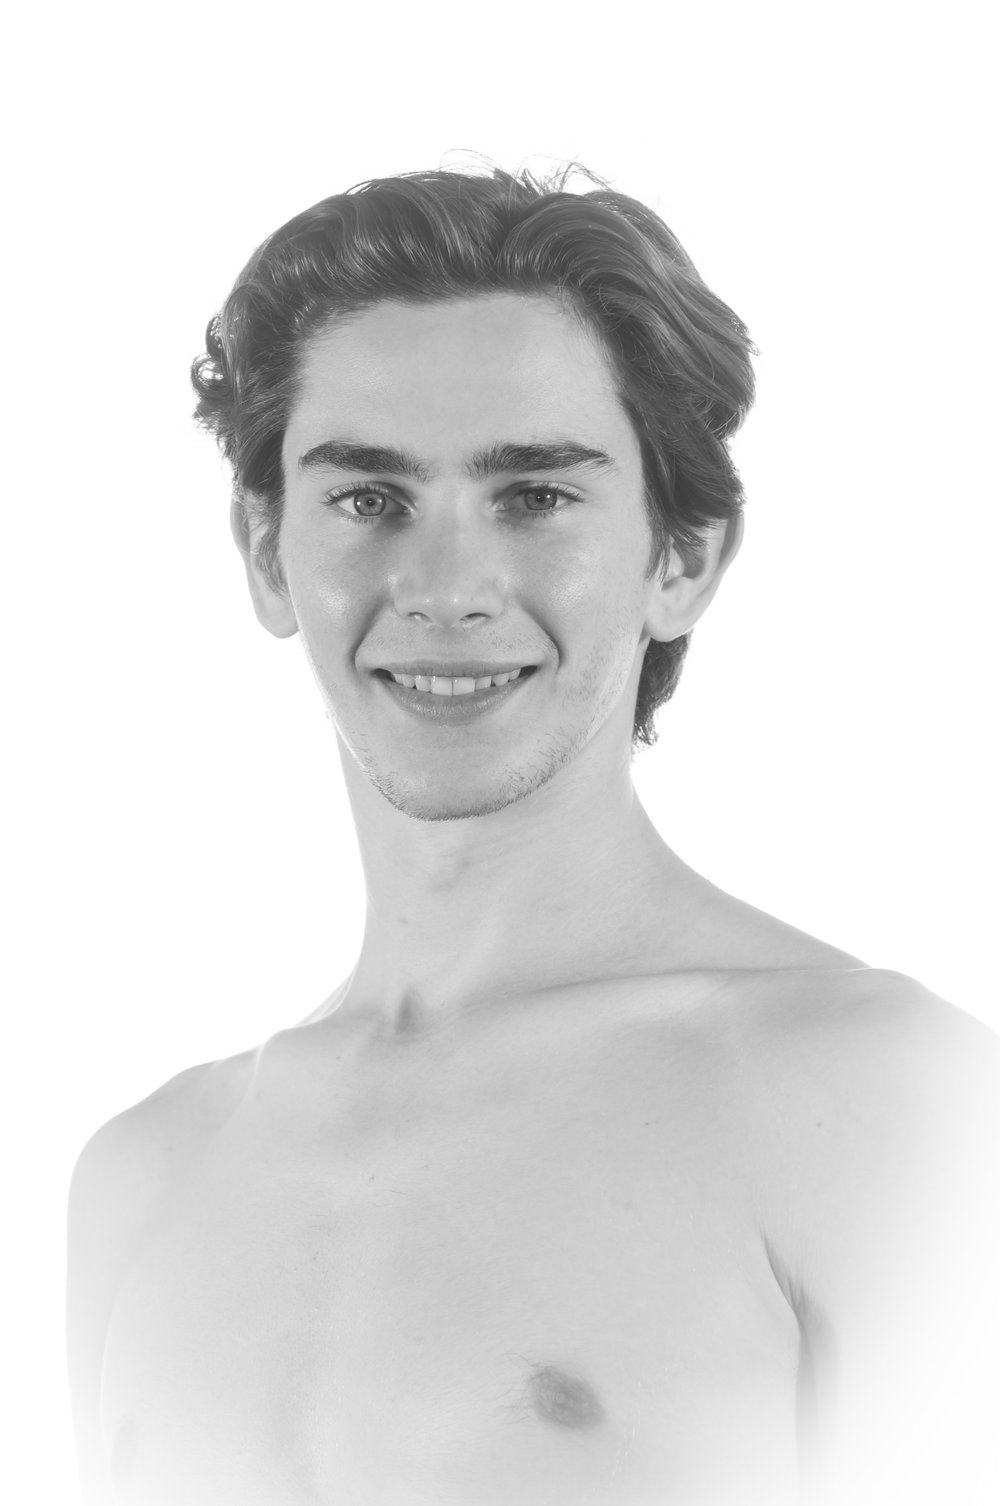 Tristan Gross Company Artist   Born and raised in Melbourne, Australia. He began his dance career early participating in the closing ceremony of the 2006 Commonwealth Games in Melbourne. He attended the Victorian College of the Arts Secondary School (VCASS) on a full-time dance scholarship, then full time at Dance World studios in Melbourne before completing three years of ballet study at the National Theatre Ballet School under the directorship of Beverly Fry where he Consolidated his partner schools with many roles including Giselle and Nutcracker and Cinderella.  In 2016 Tristan joined the West Australian Ballet as a young artist and in 2017 travelled to Europe to gain valuable experience returning to Melbourne to perform with the Australian Ballet in Christopher wheeldon Alice's Adventures in Wonderland and the Sydney season of The Sleeping Beauty Before joining the royal New Zealand ballet in January 2018 where he performed in many ballets such as the piano by Jiri Bubenicek, Sechs Tanze by Juri Kylian, remember Muma by Danielle Rowe, The Long and the short of it by Lachlan prior, the Nutcracker by Val Caniparoli.  Tristan joins Melbourne City Ballet for 2019.